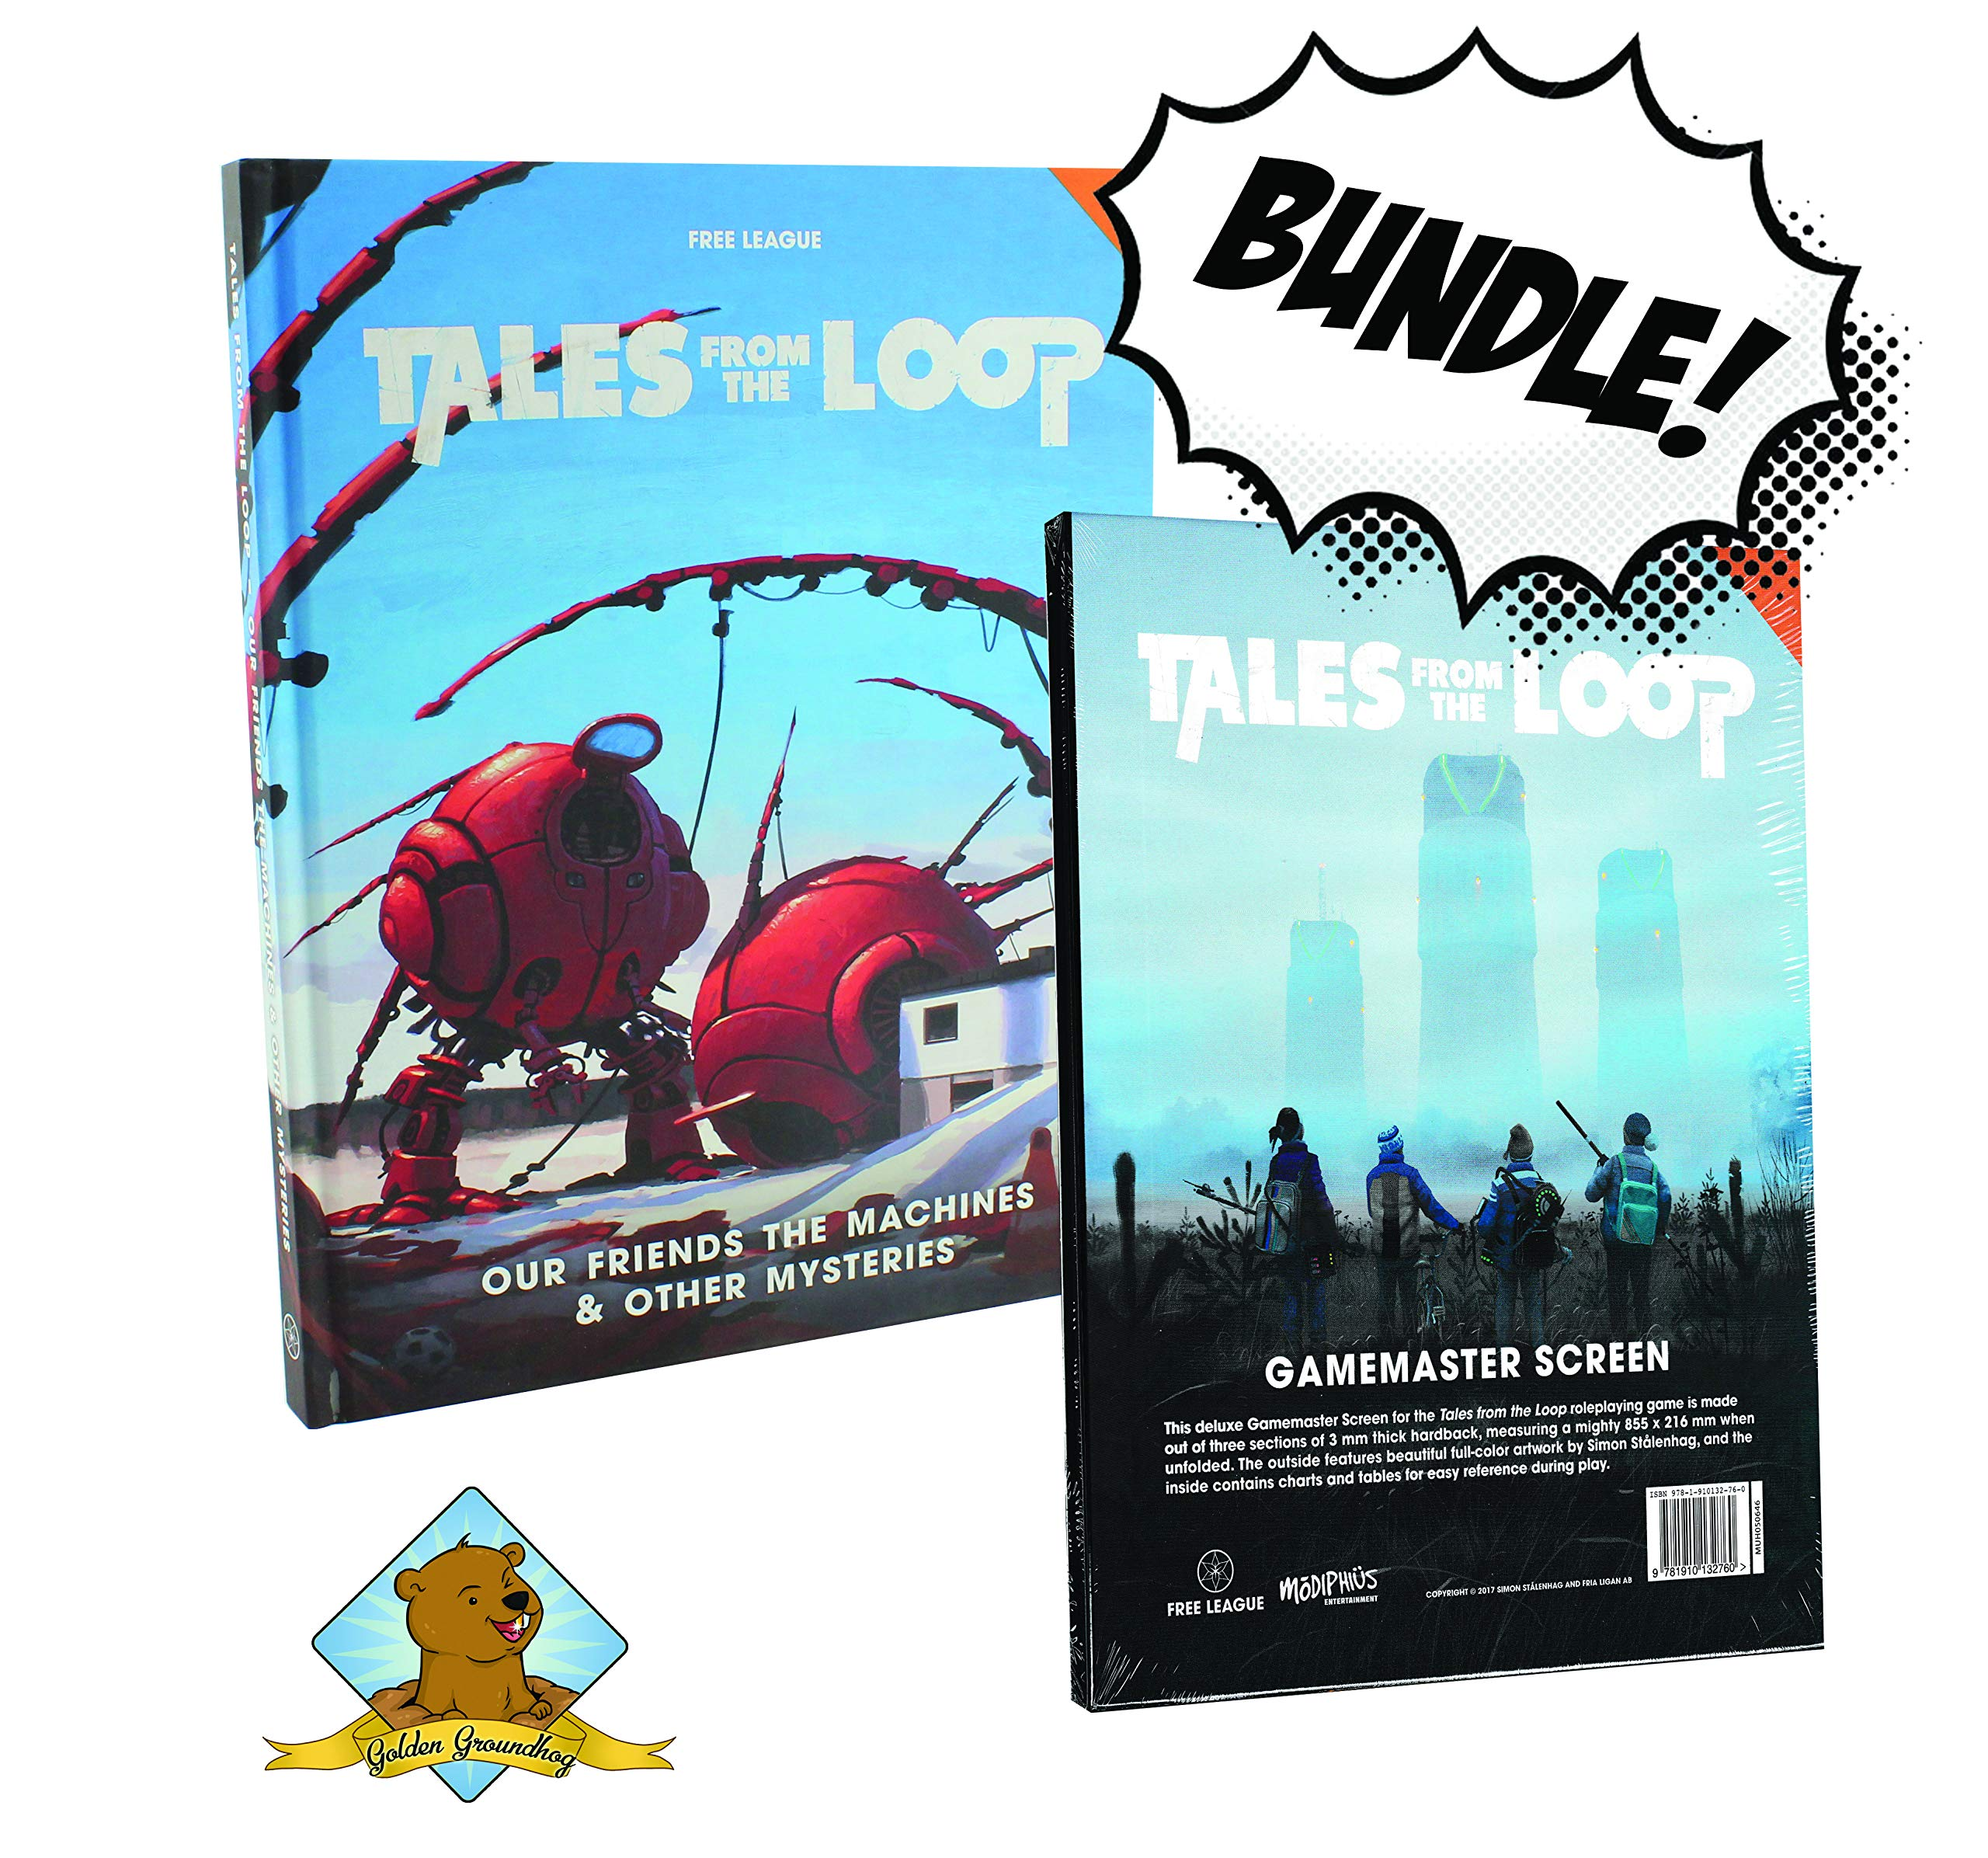 Tales from The Loop Our Friends The Machines & Other Mysteries and Gamemaster Screen Golden Groundhog Bundle